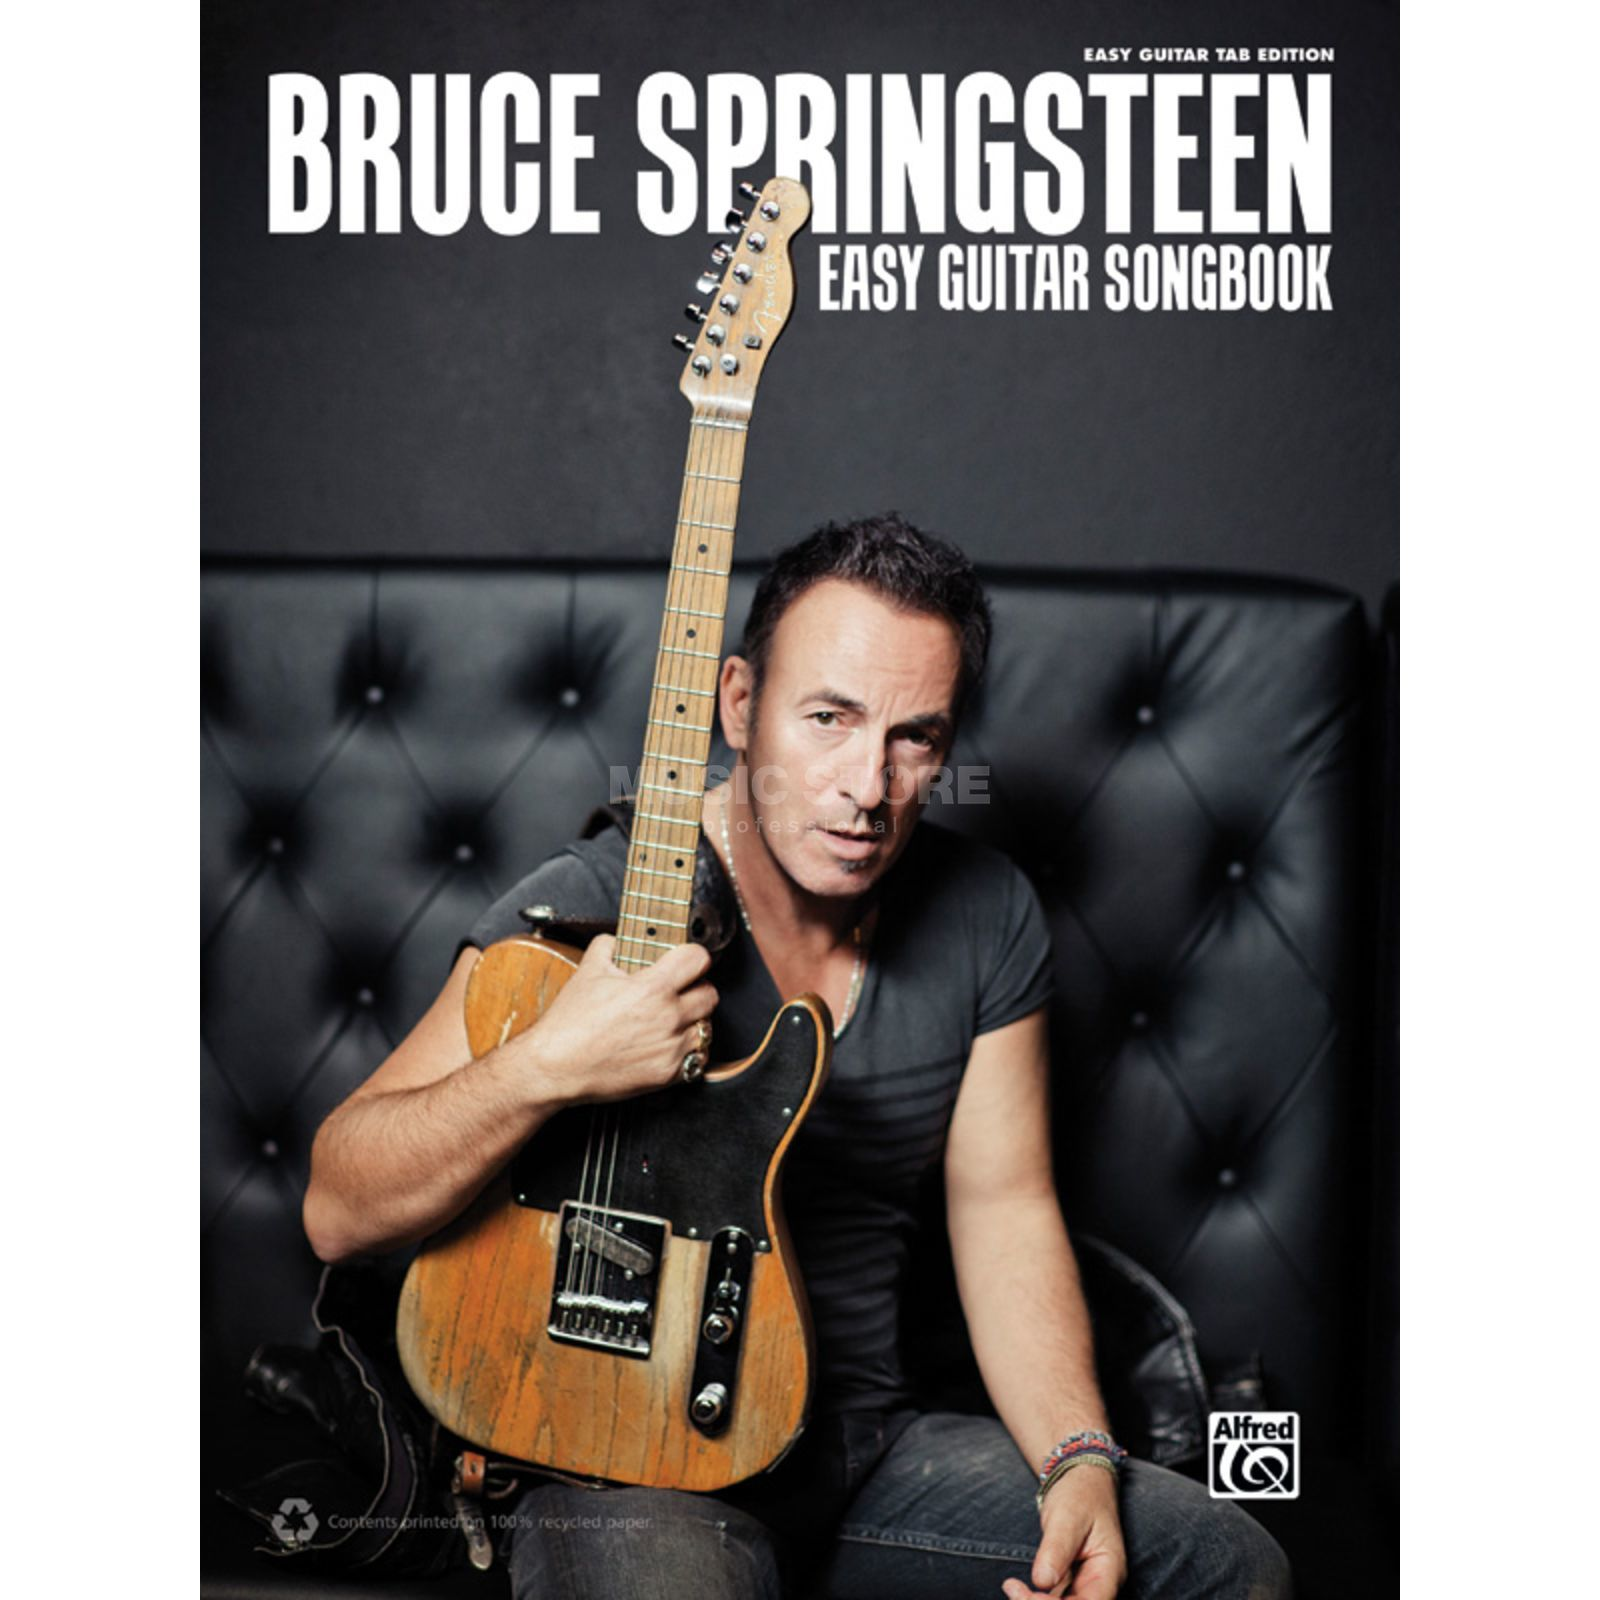 Alfred Music Bruce Springsteen: Easy Guitar Songbook TAB Produktbild